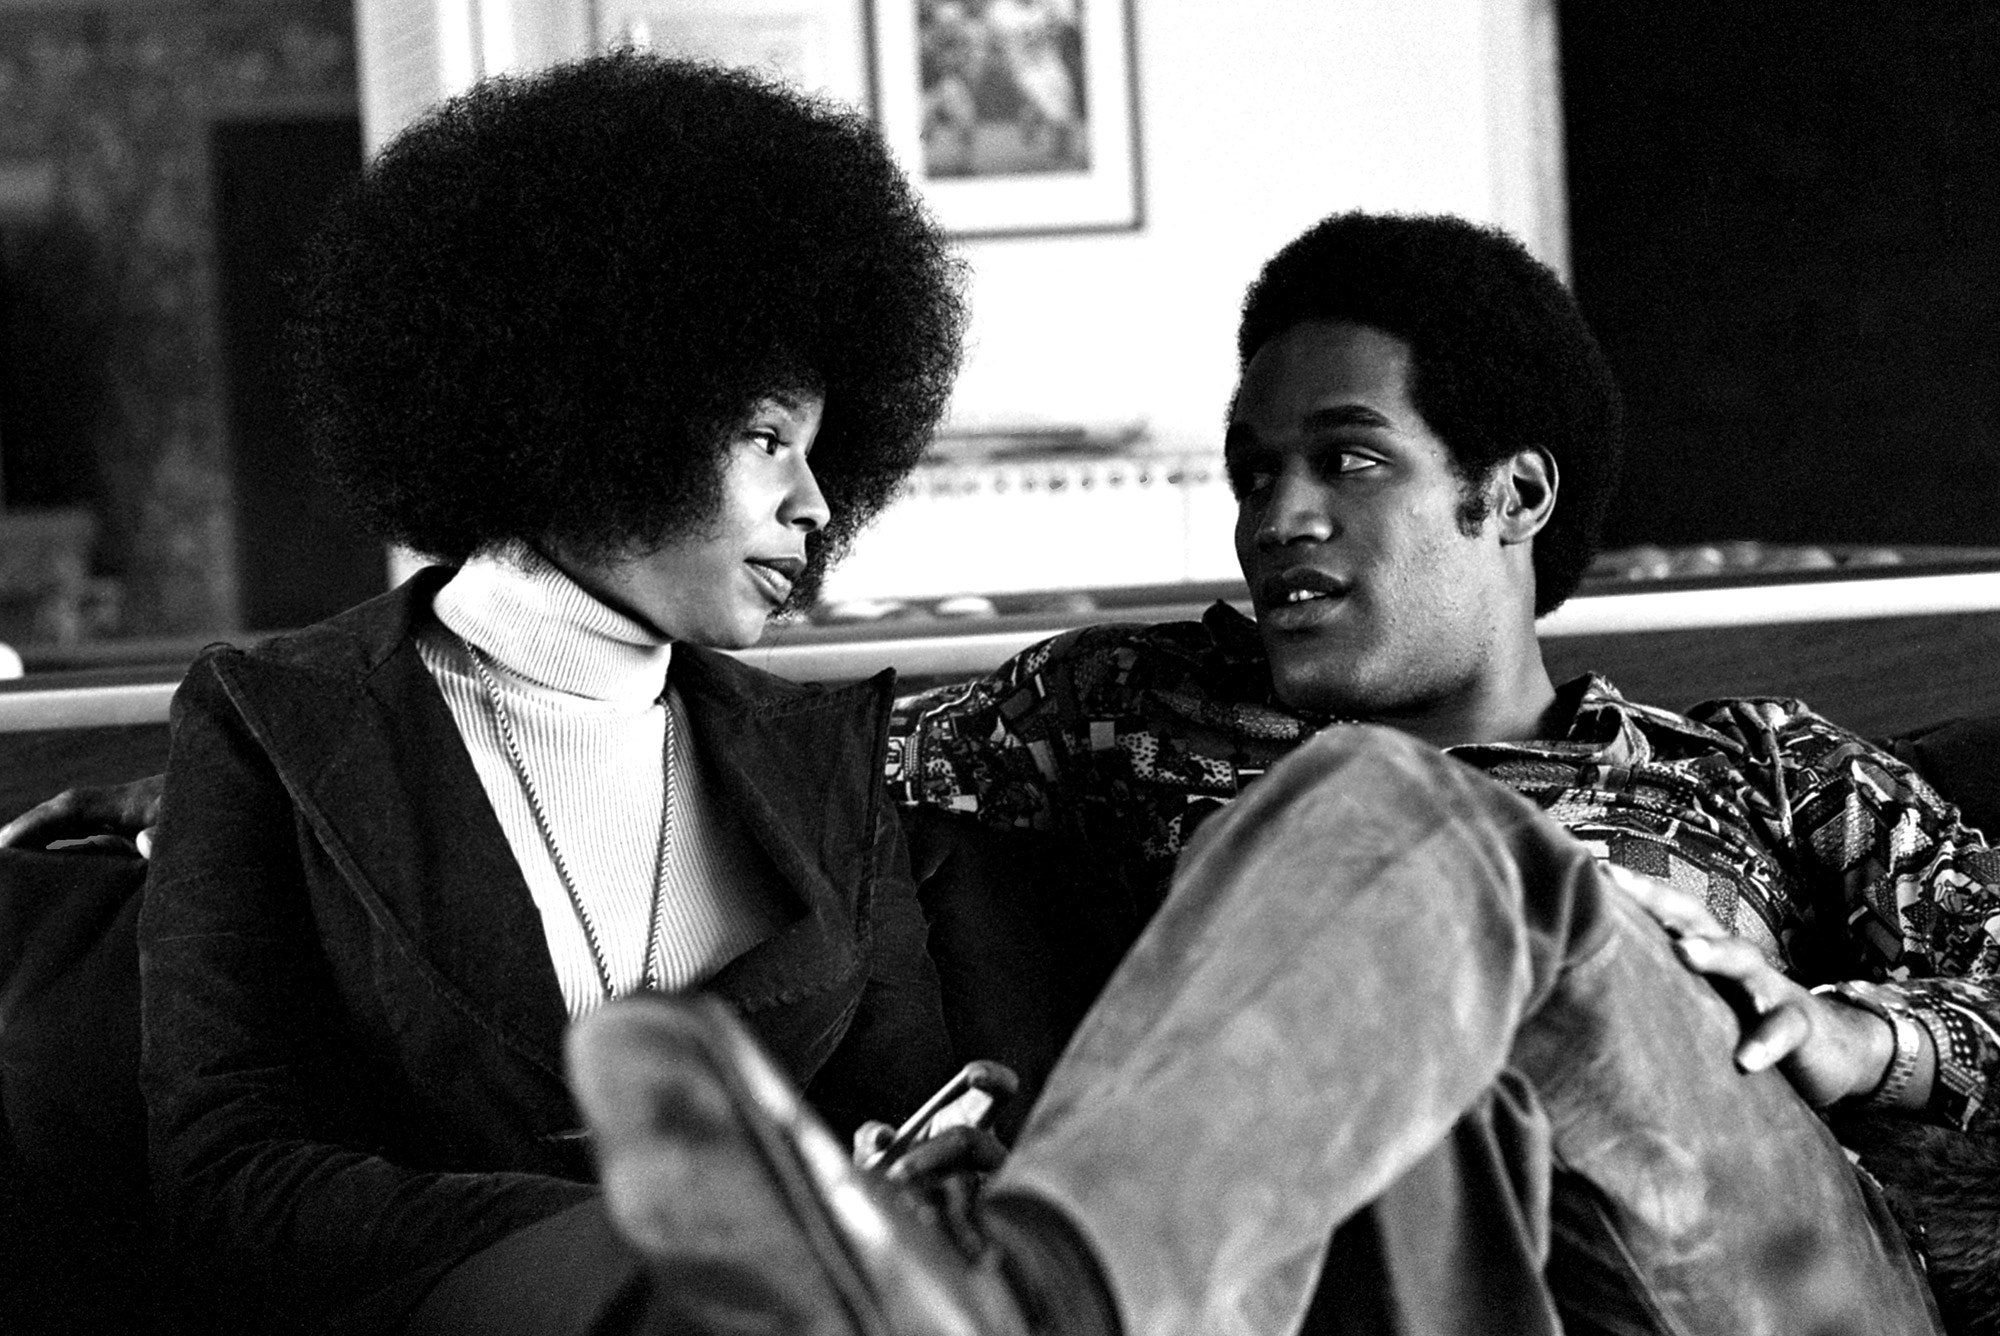 Marguerite Whitley and O.J. Simpson